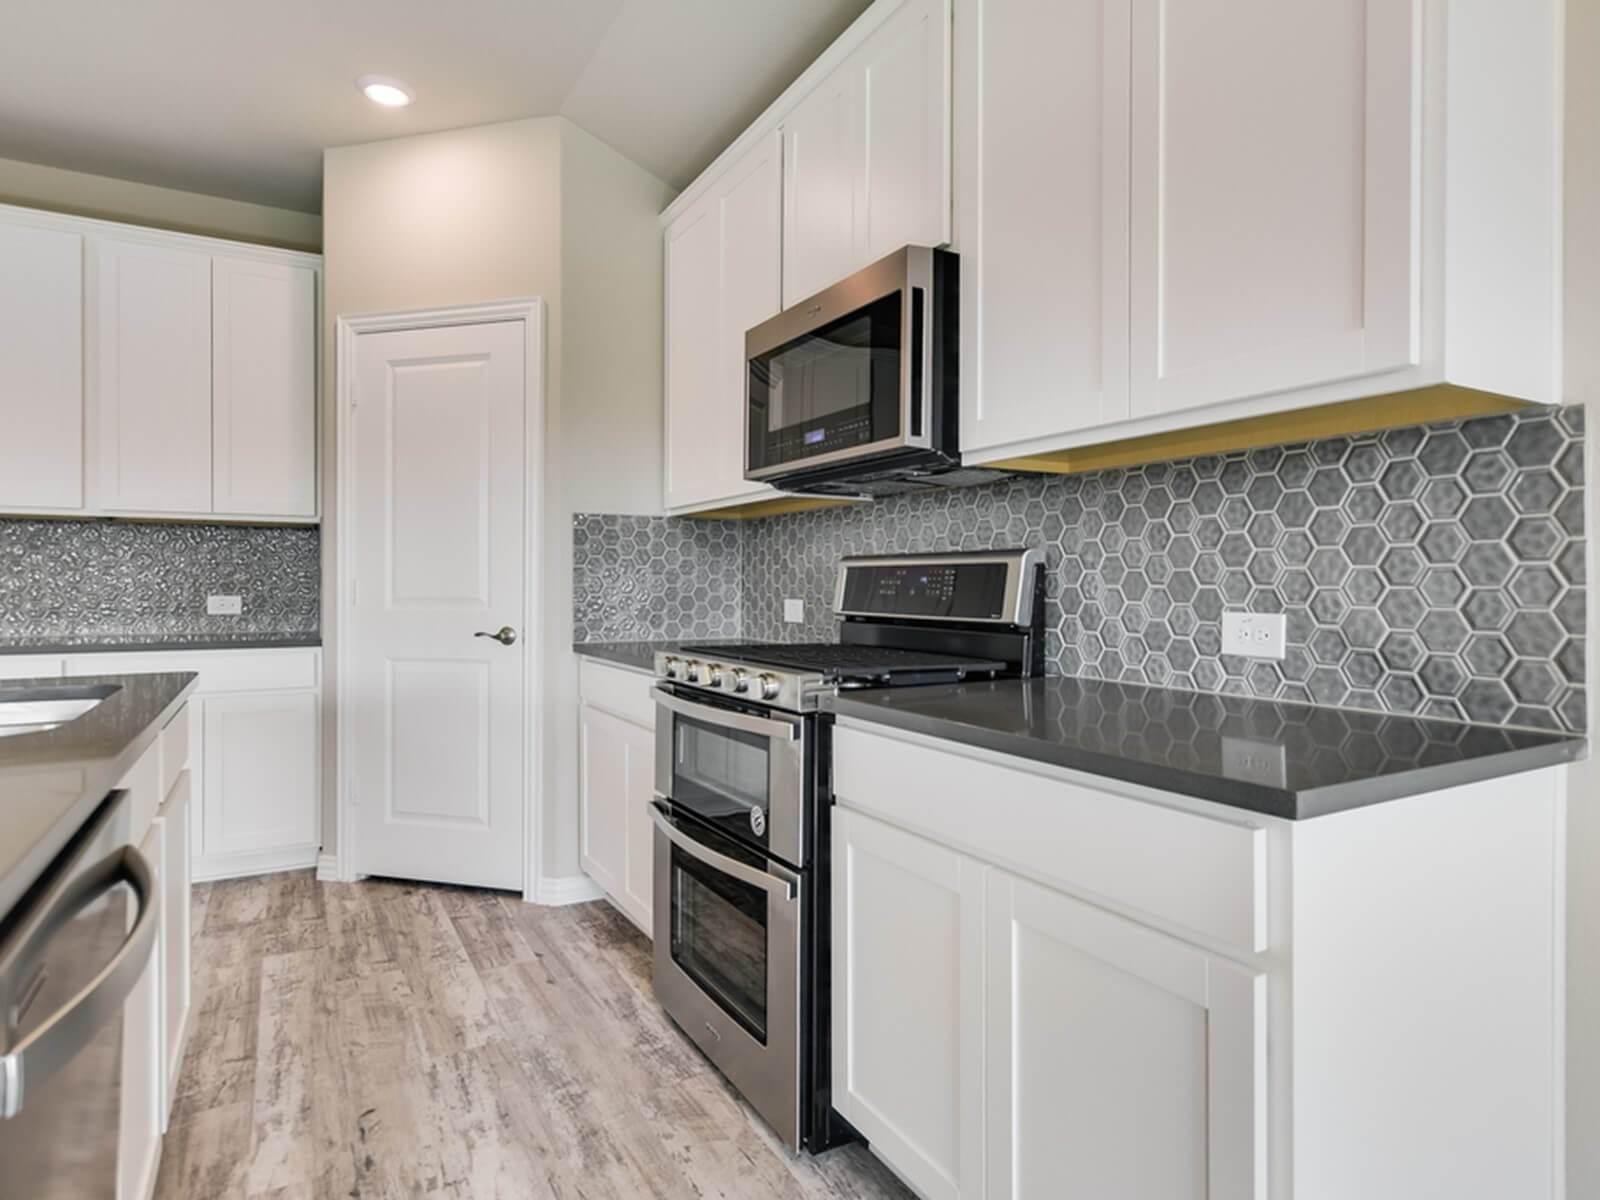 Kitchen featured in The Greenville By Meritage Homes in Dallas, TX